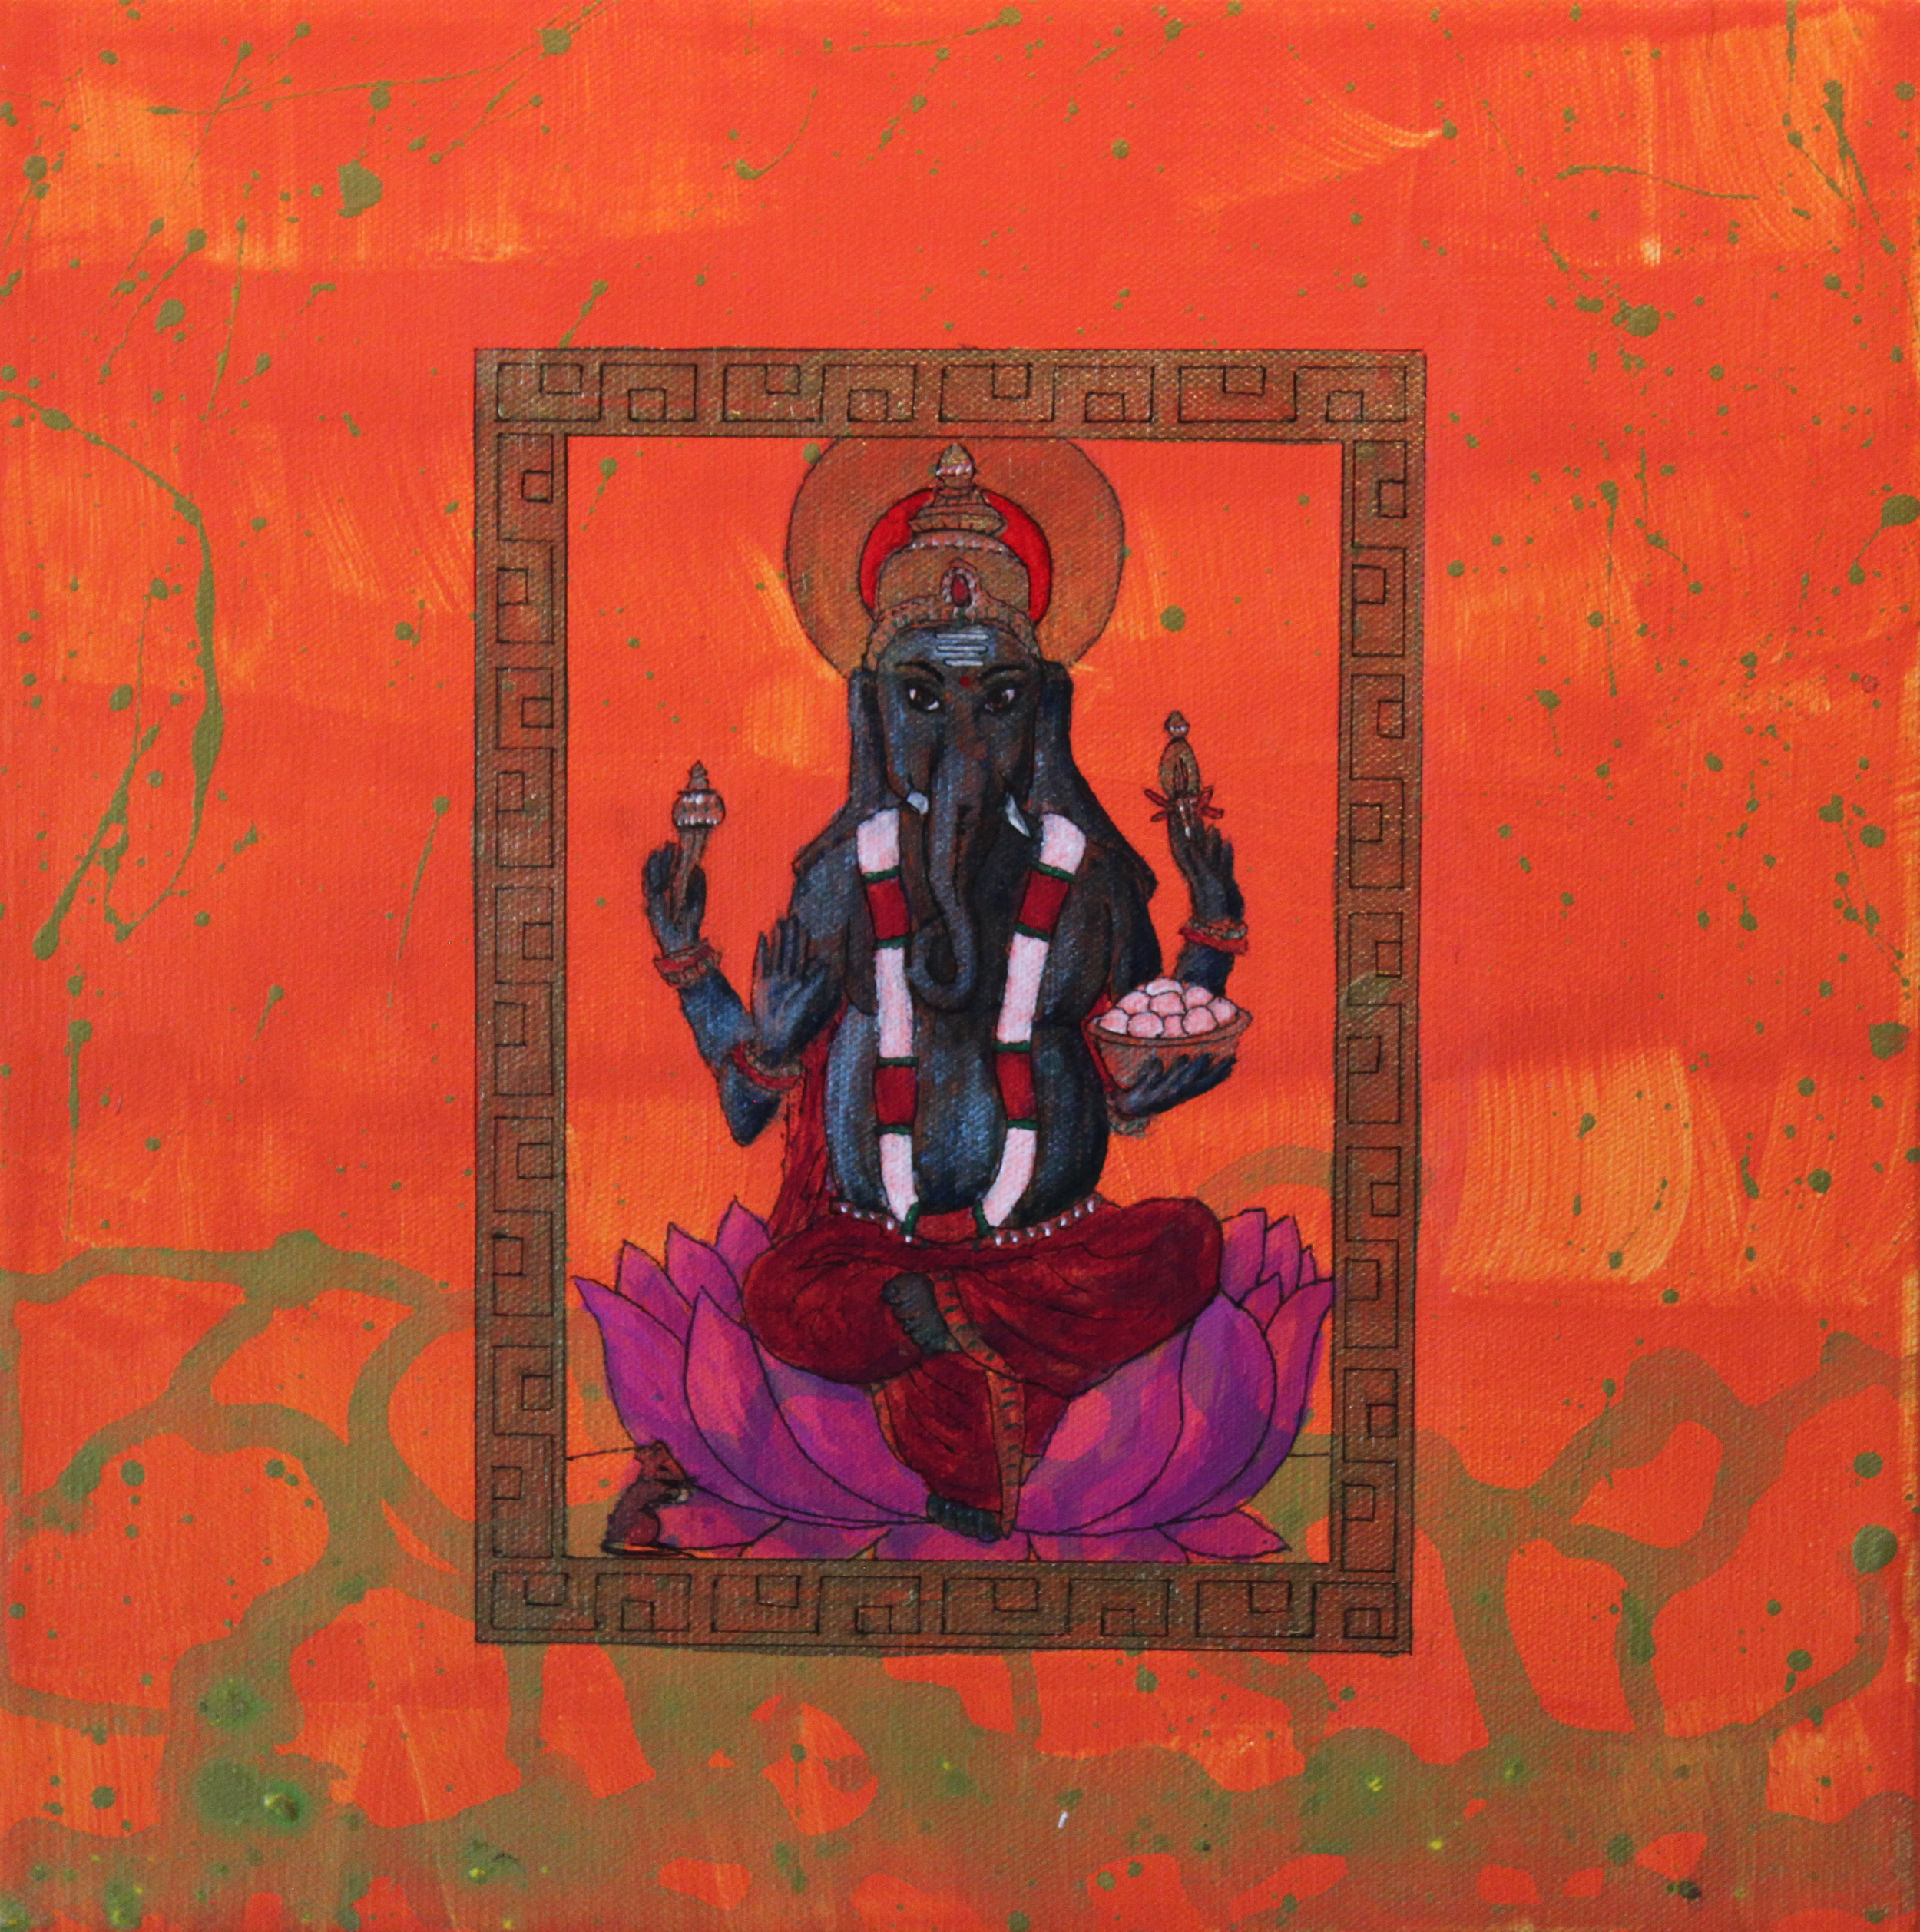 Ganesh - the Remover of Obstacles (always helpful to have on your side).Acrylic on canvas 12x12